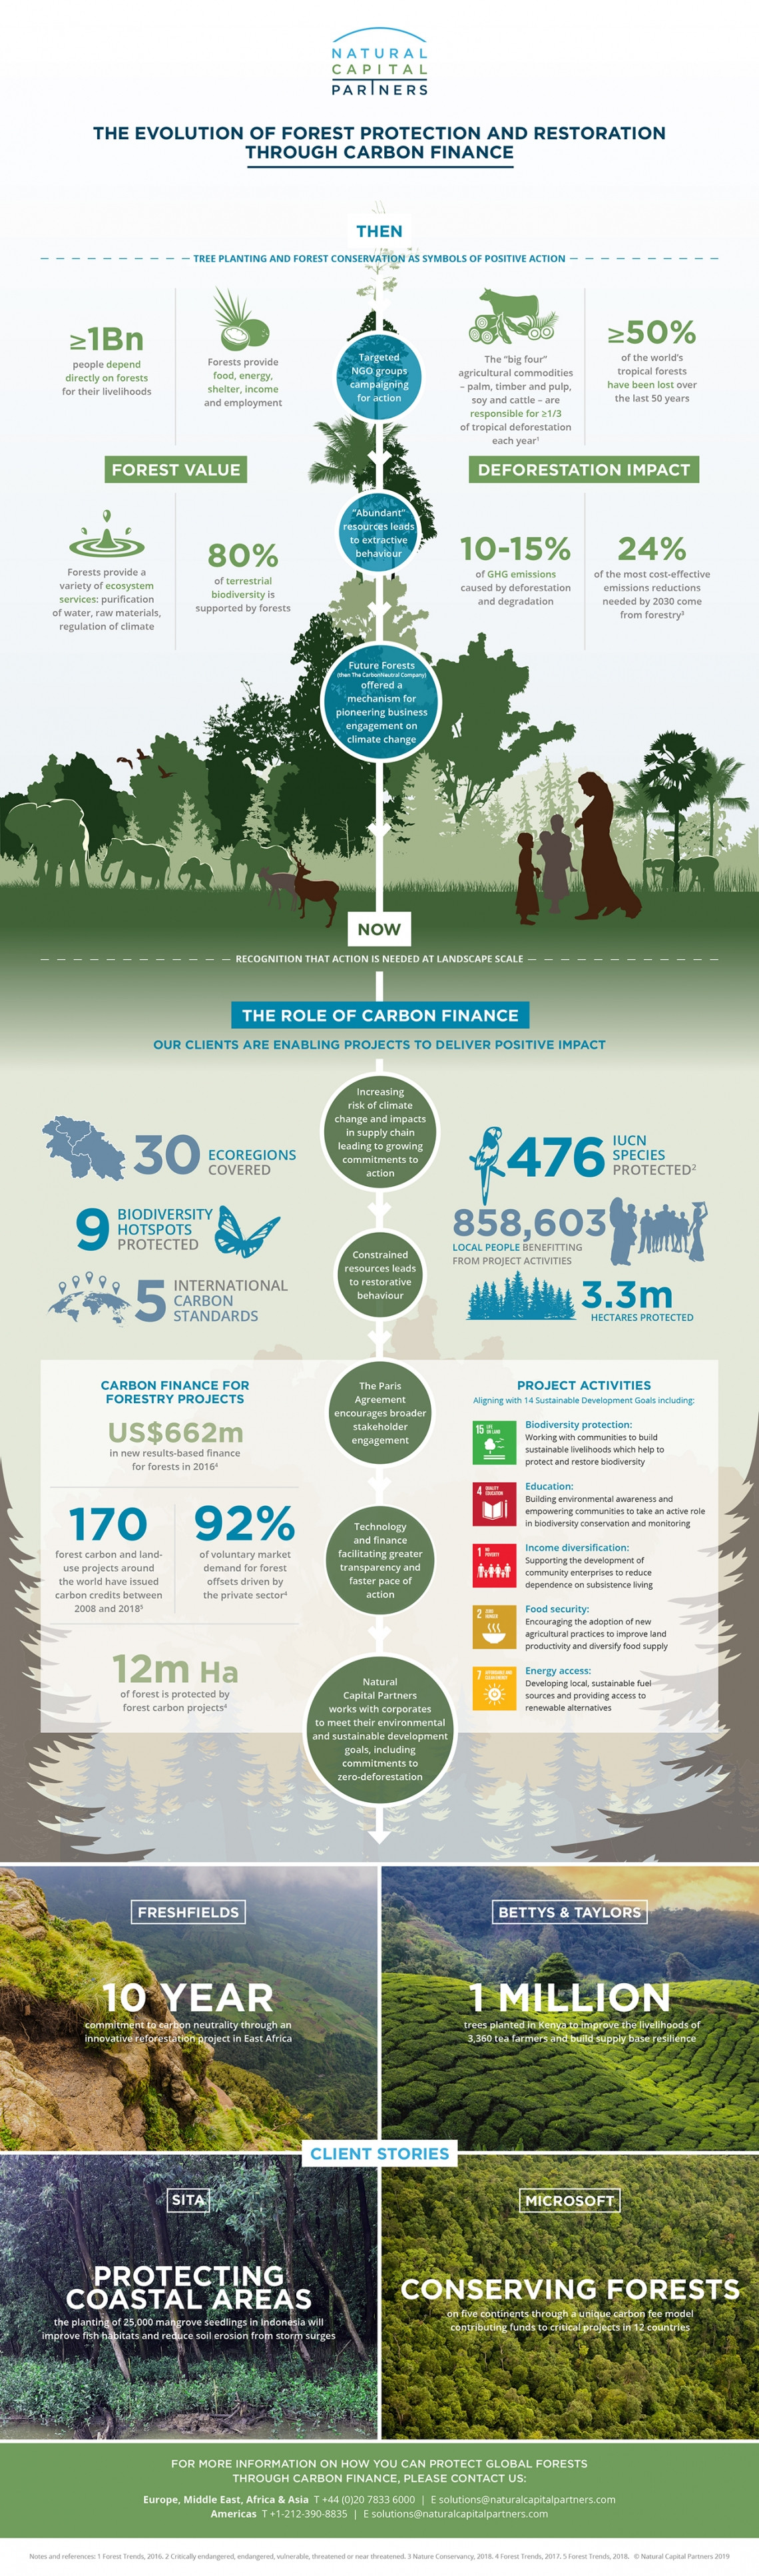 How can a business support global forests?